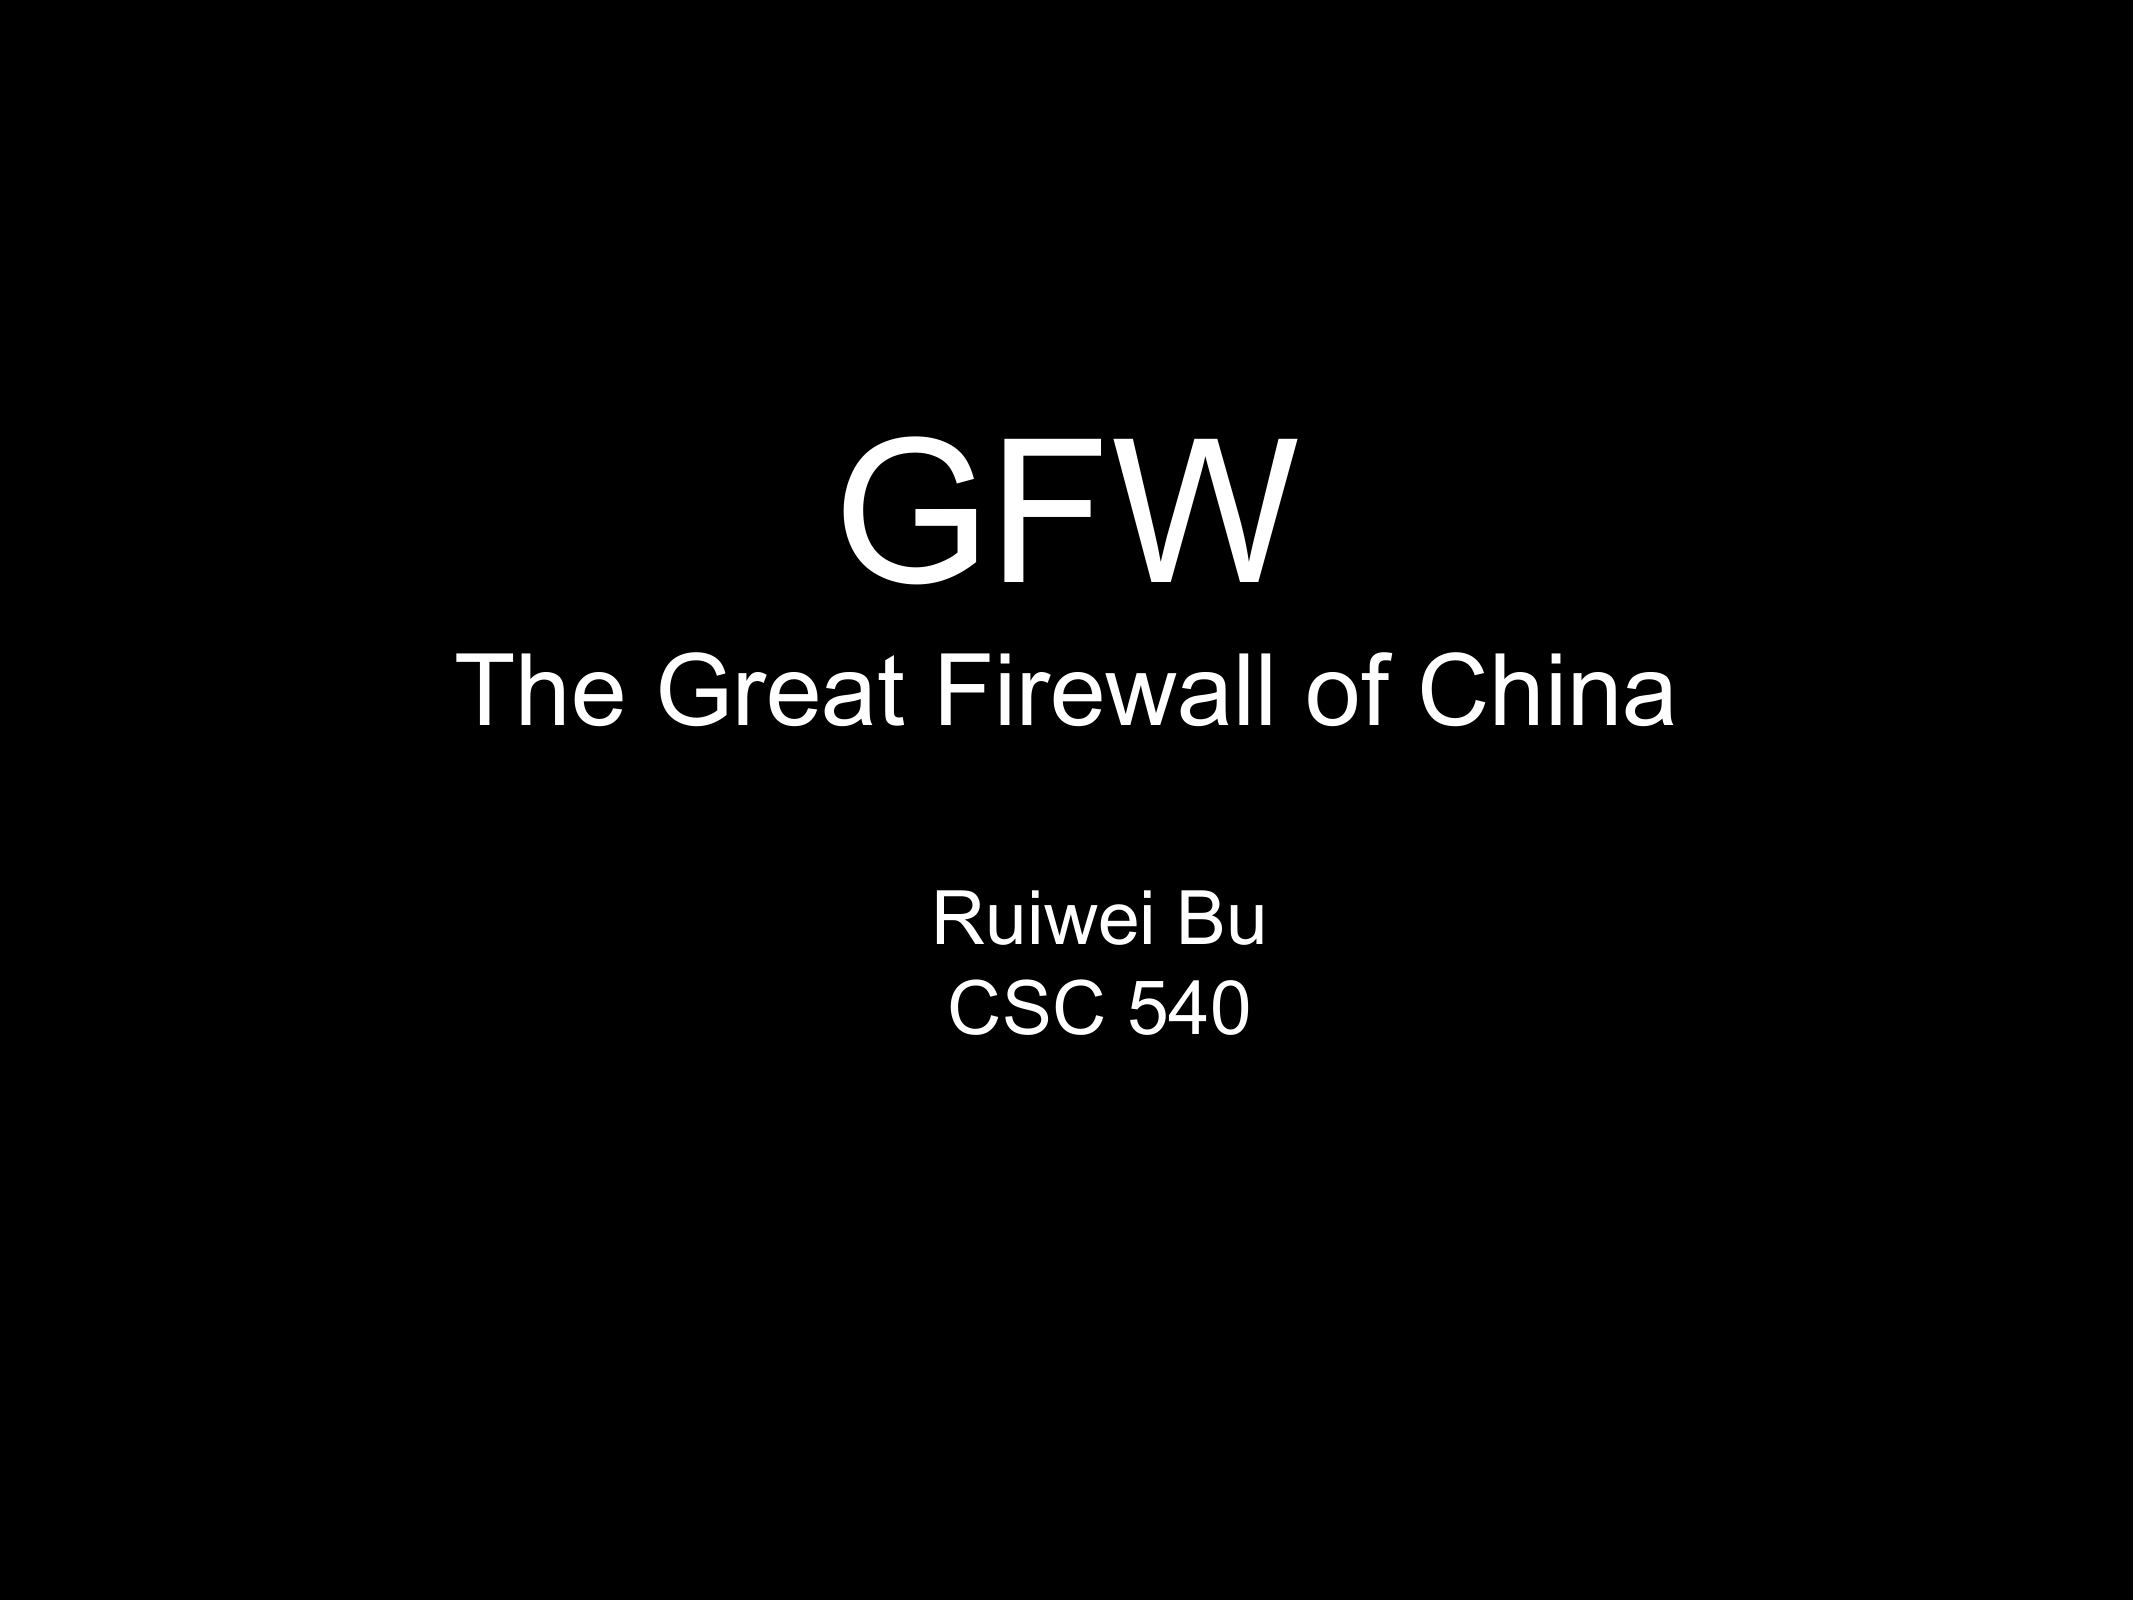 The Great Firewall of China - Murray State University`s RacerNet